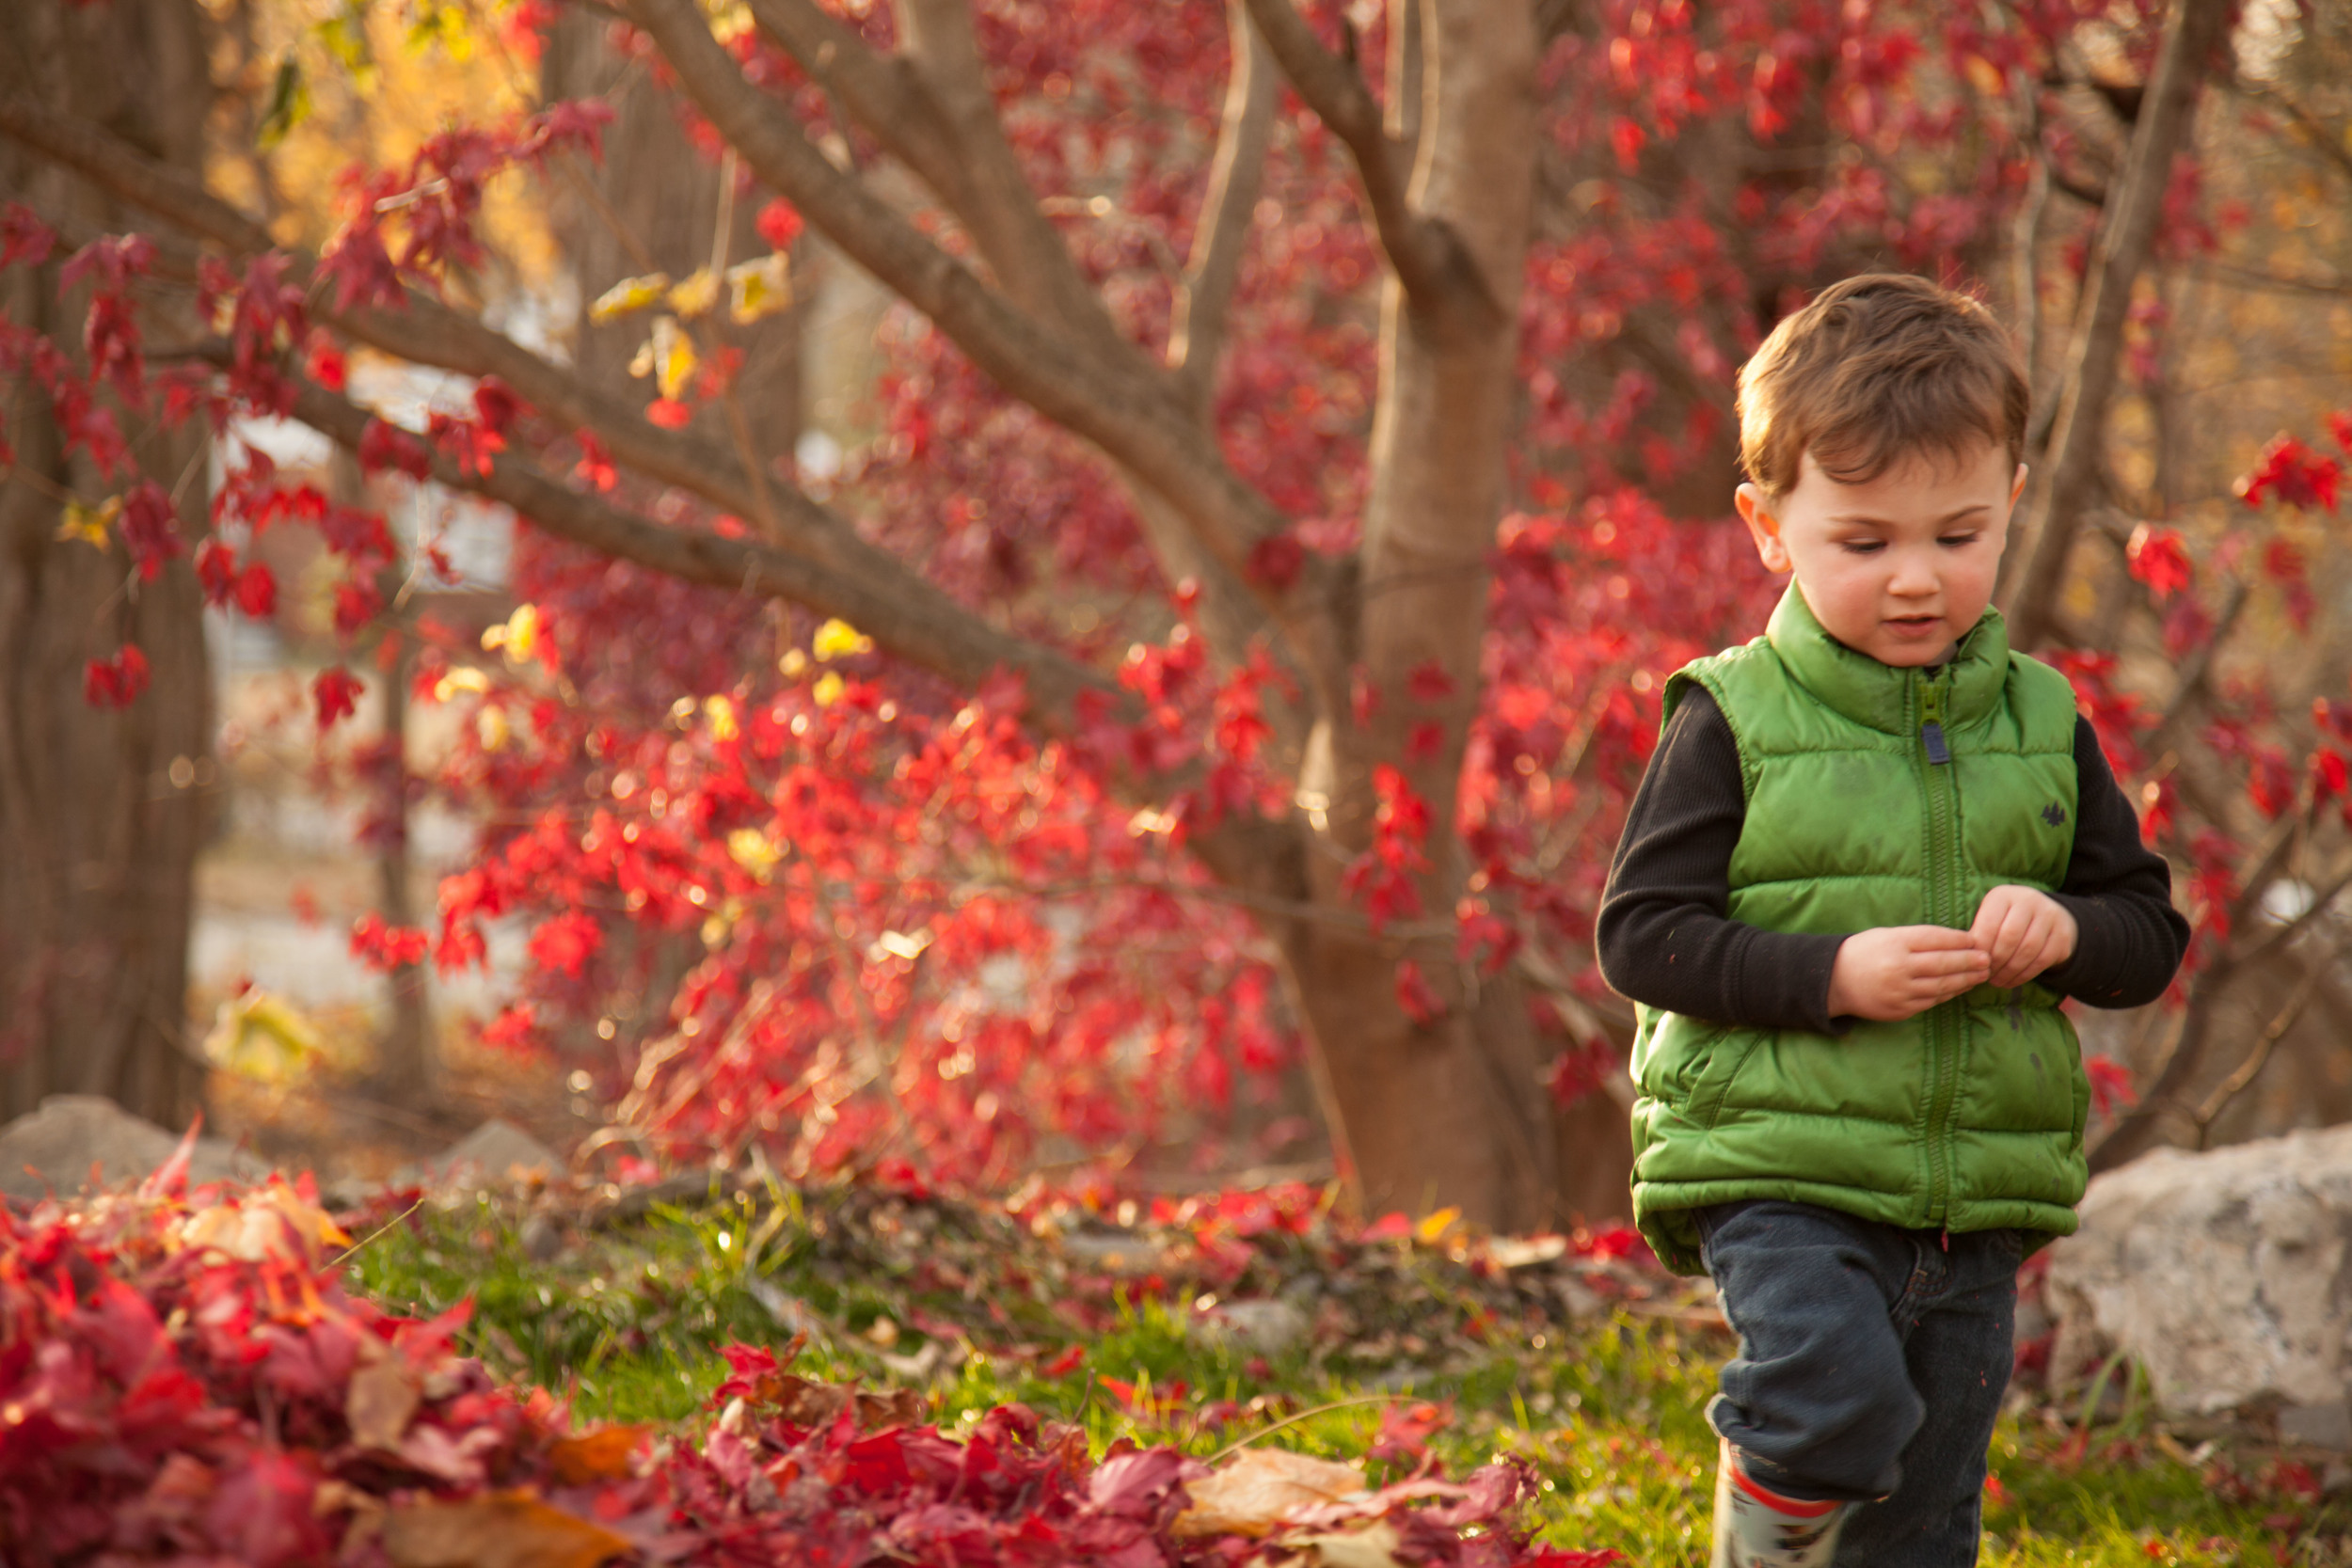 Child walking through the leaves in the fall